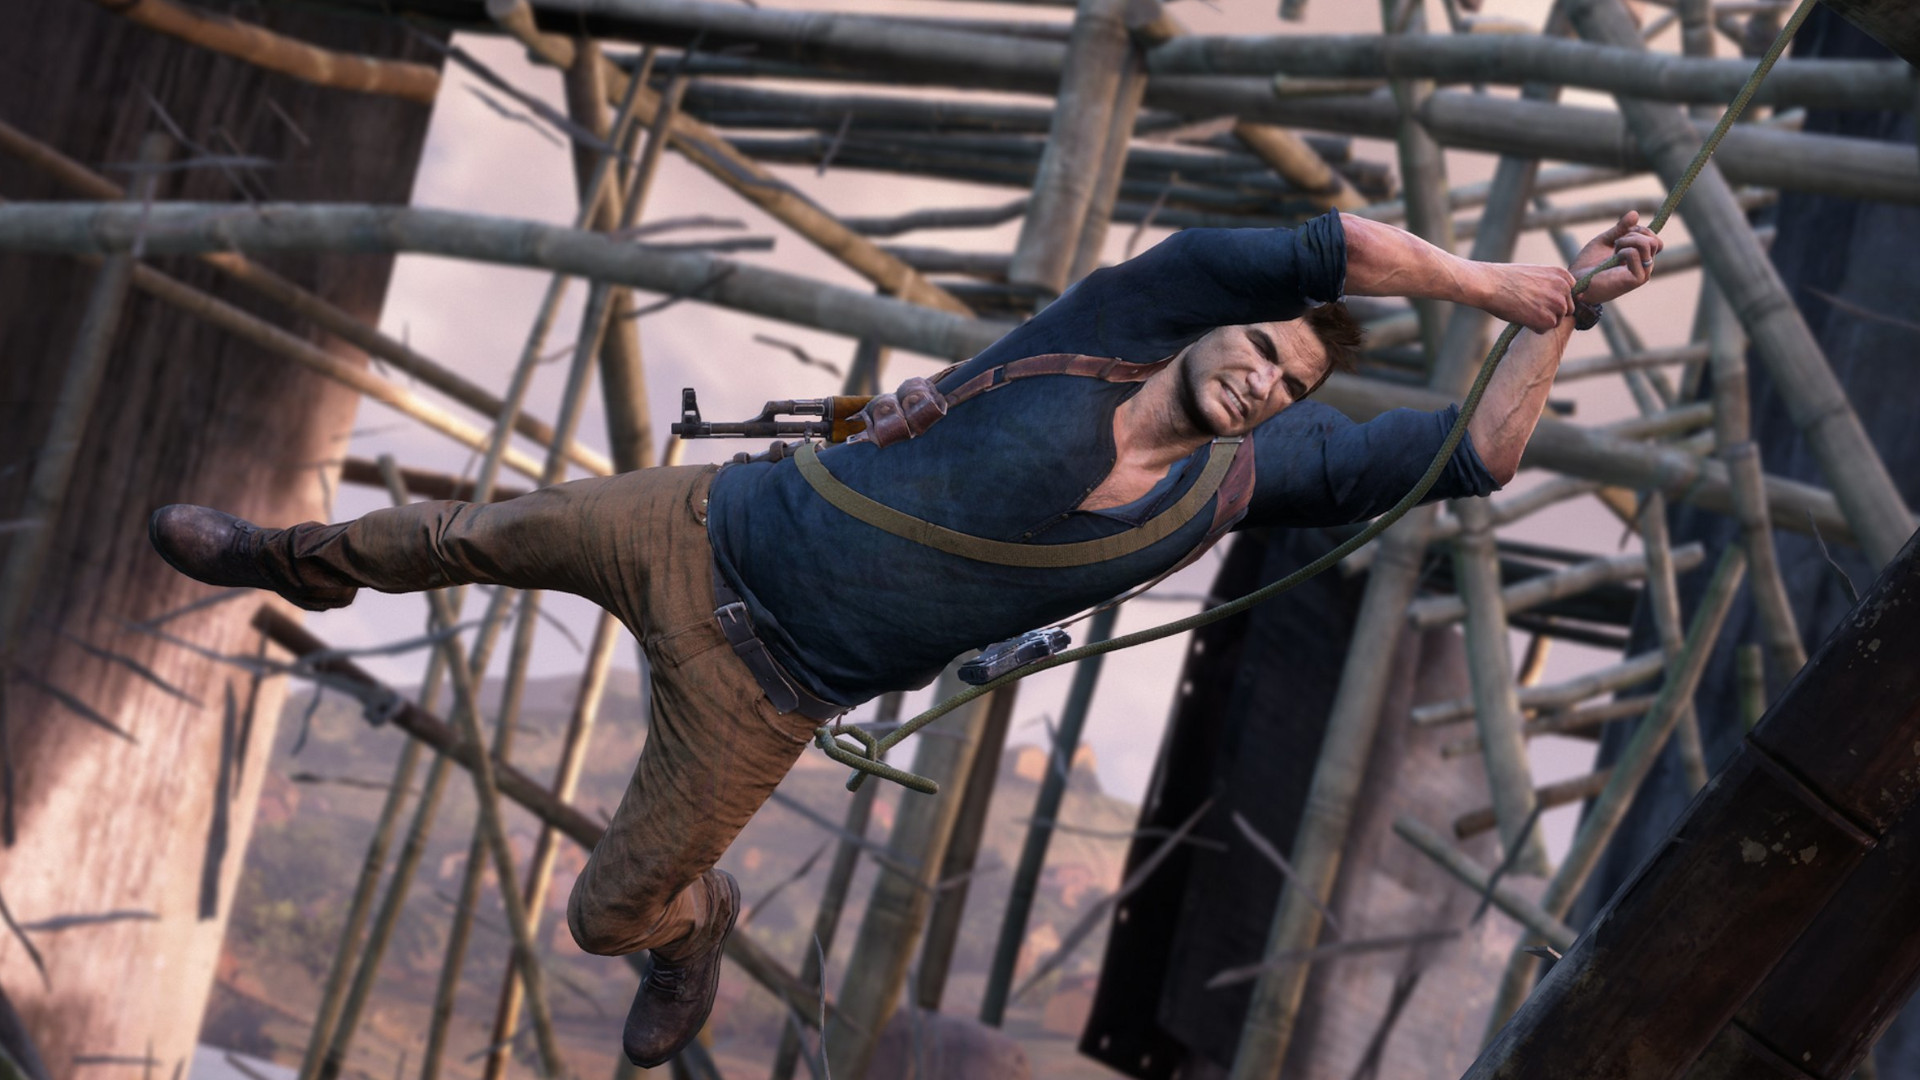 Sony leaked its own Uncharted 4 PC announcement and didn't even try to hide it